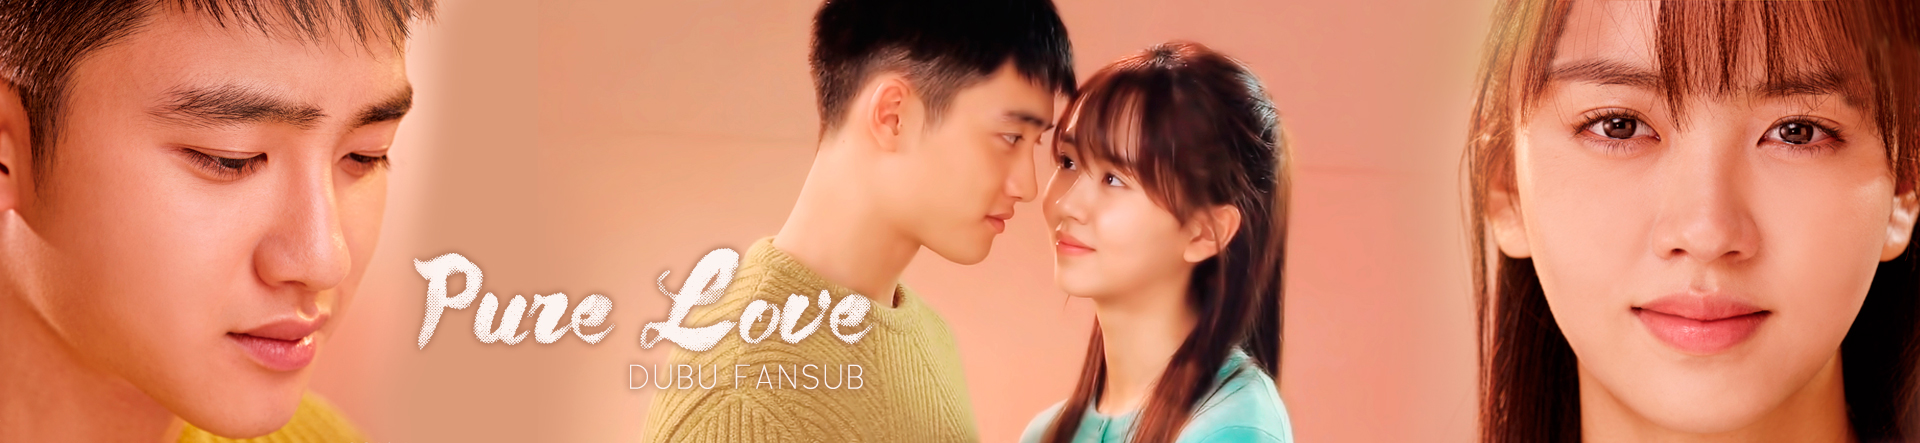 unforgettable-pure-love-do-kim-so-hyun-vostfr